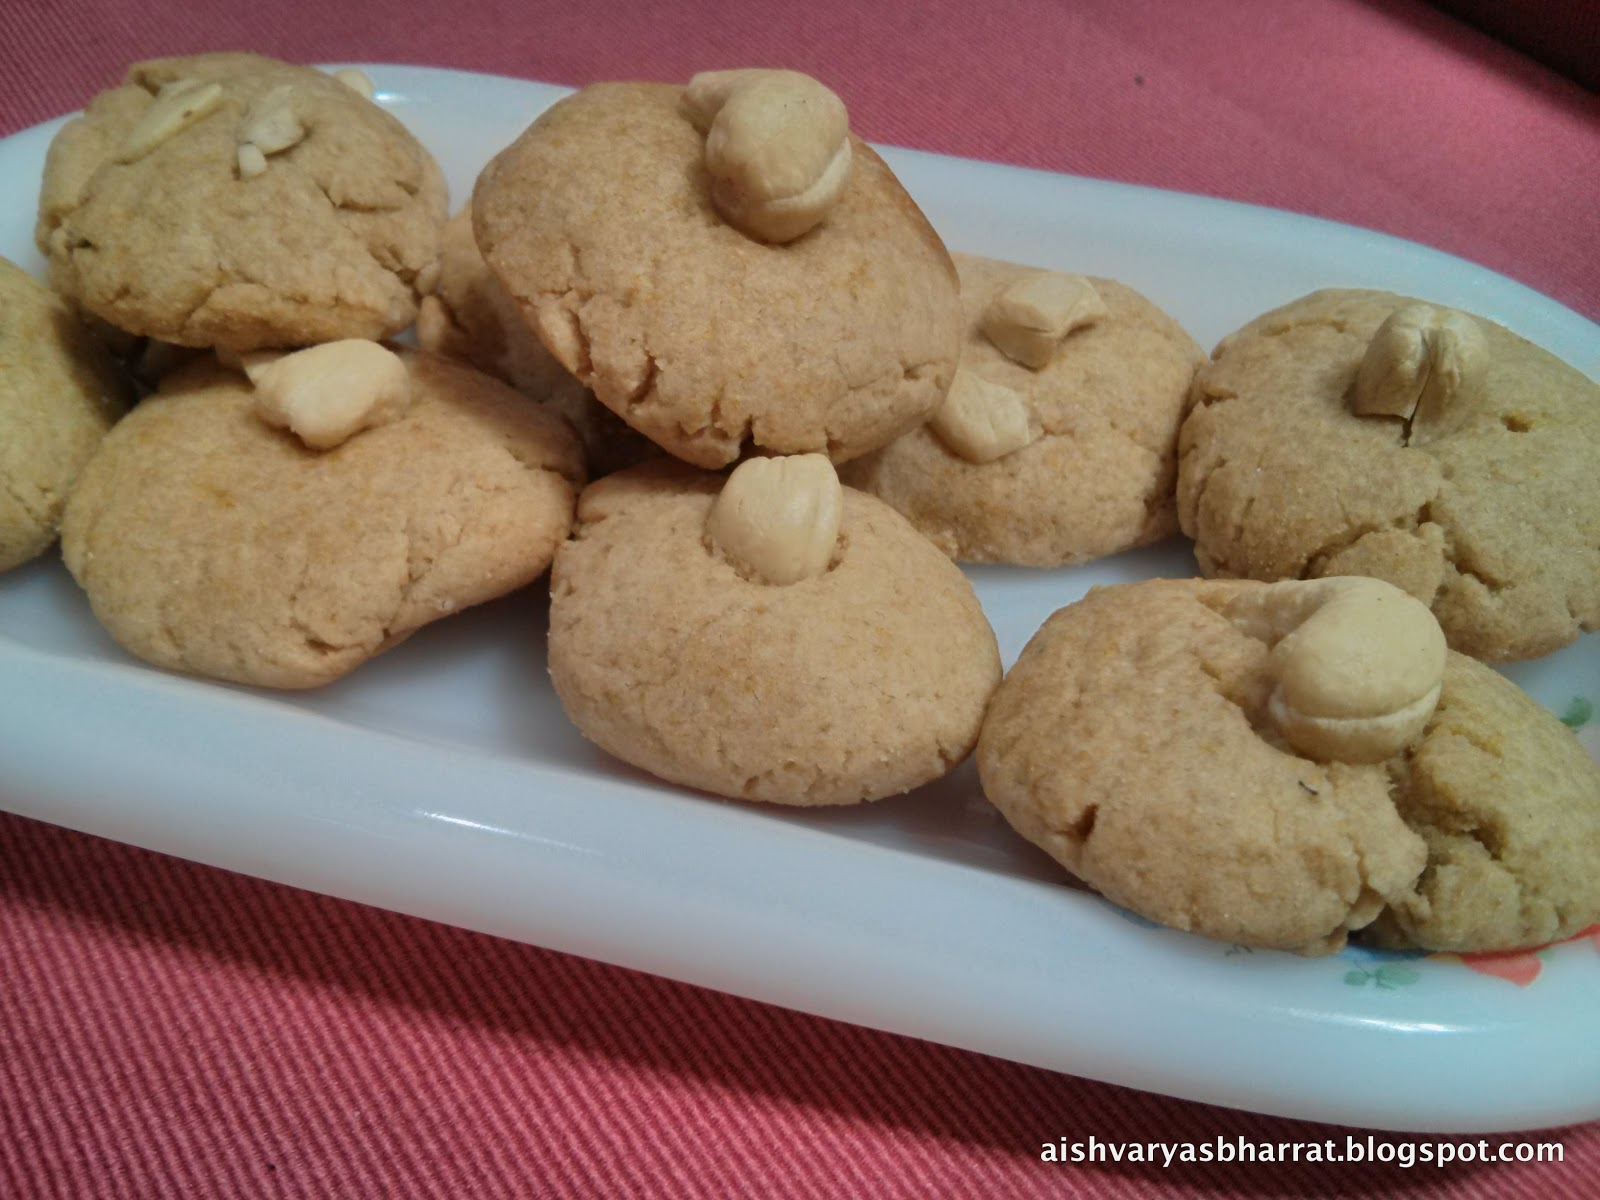 Recipe of chocolate cookies without oven